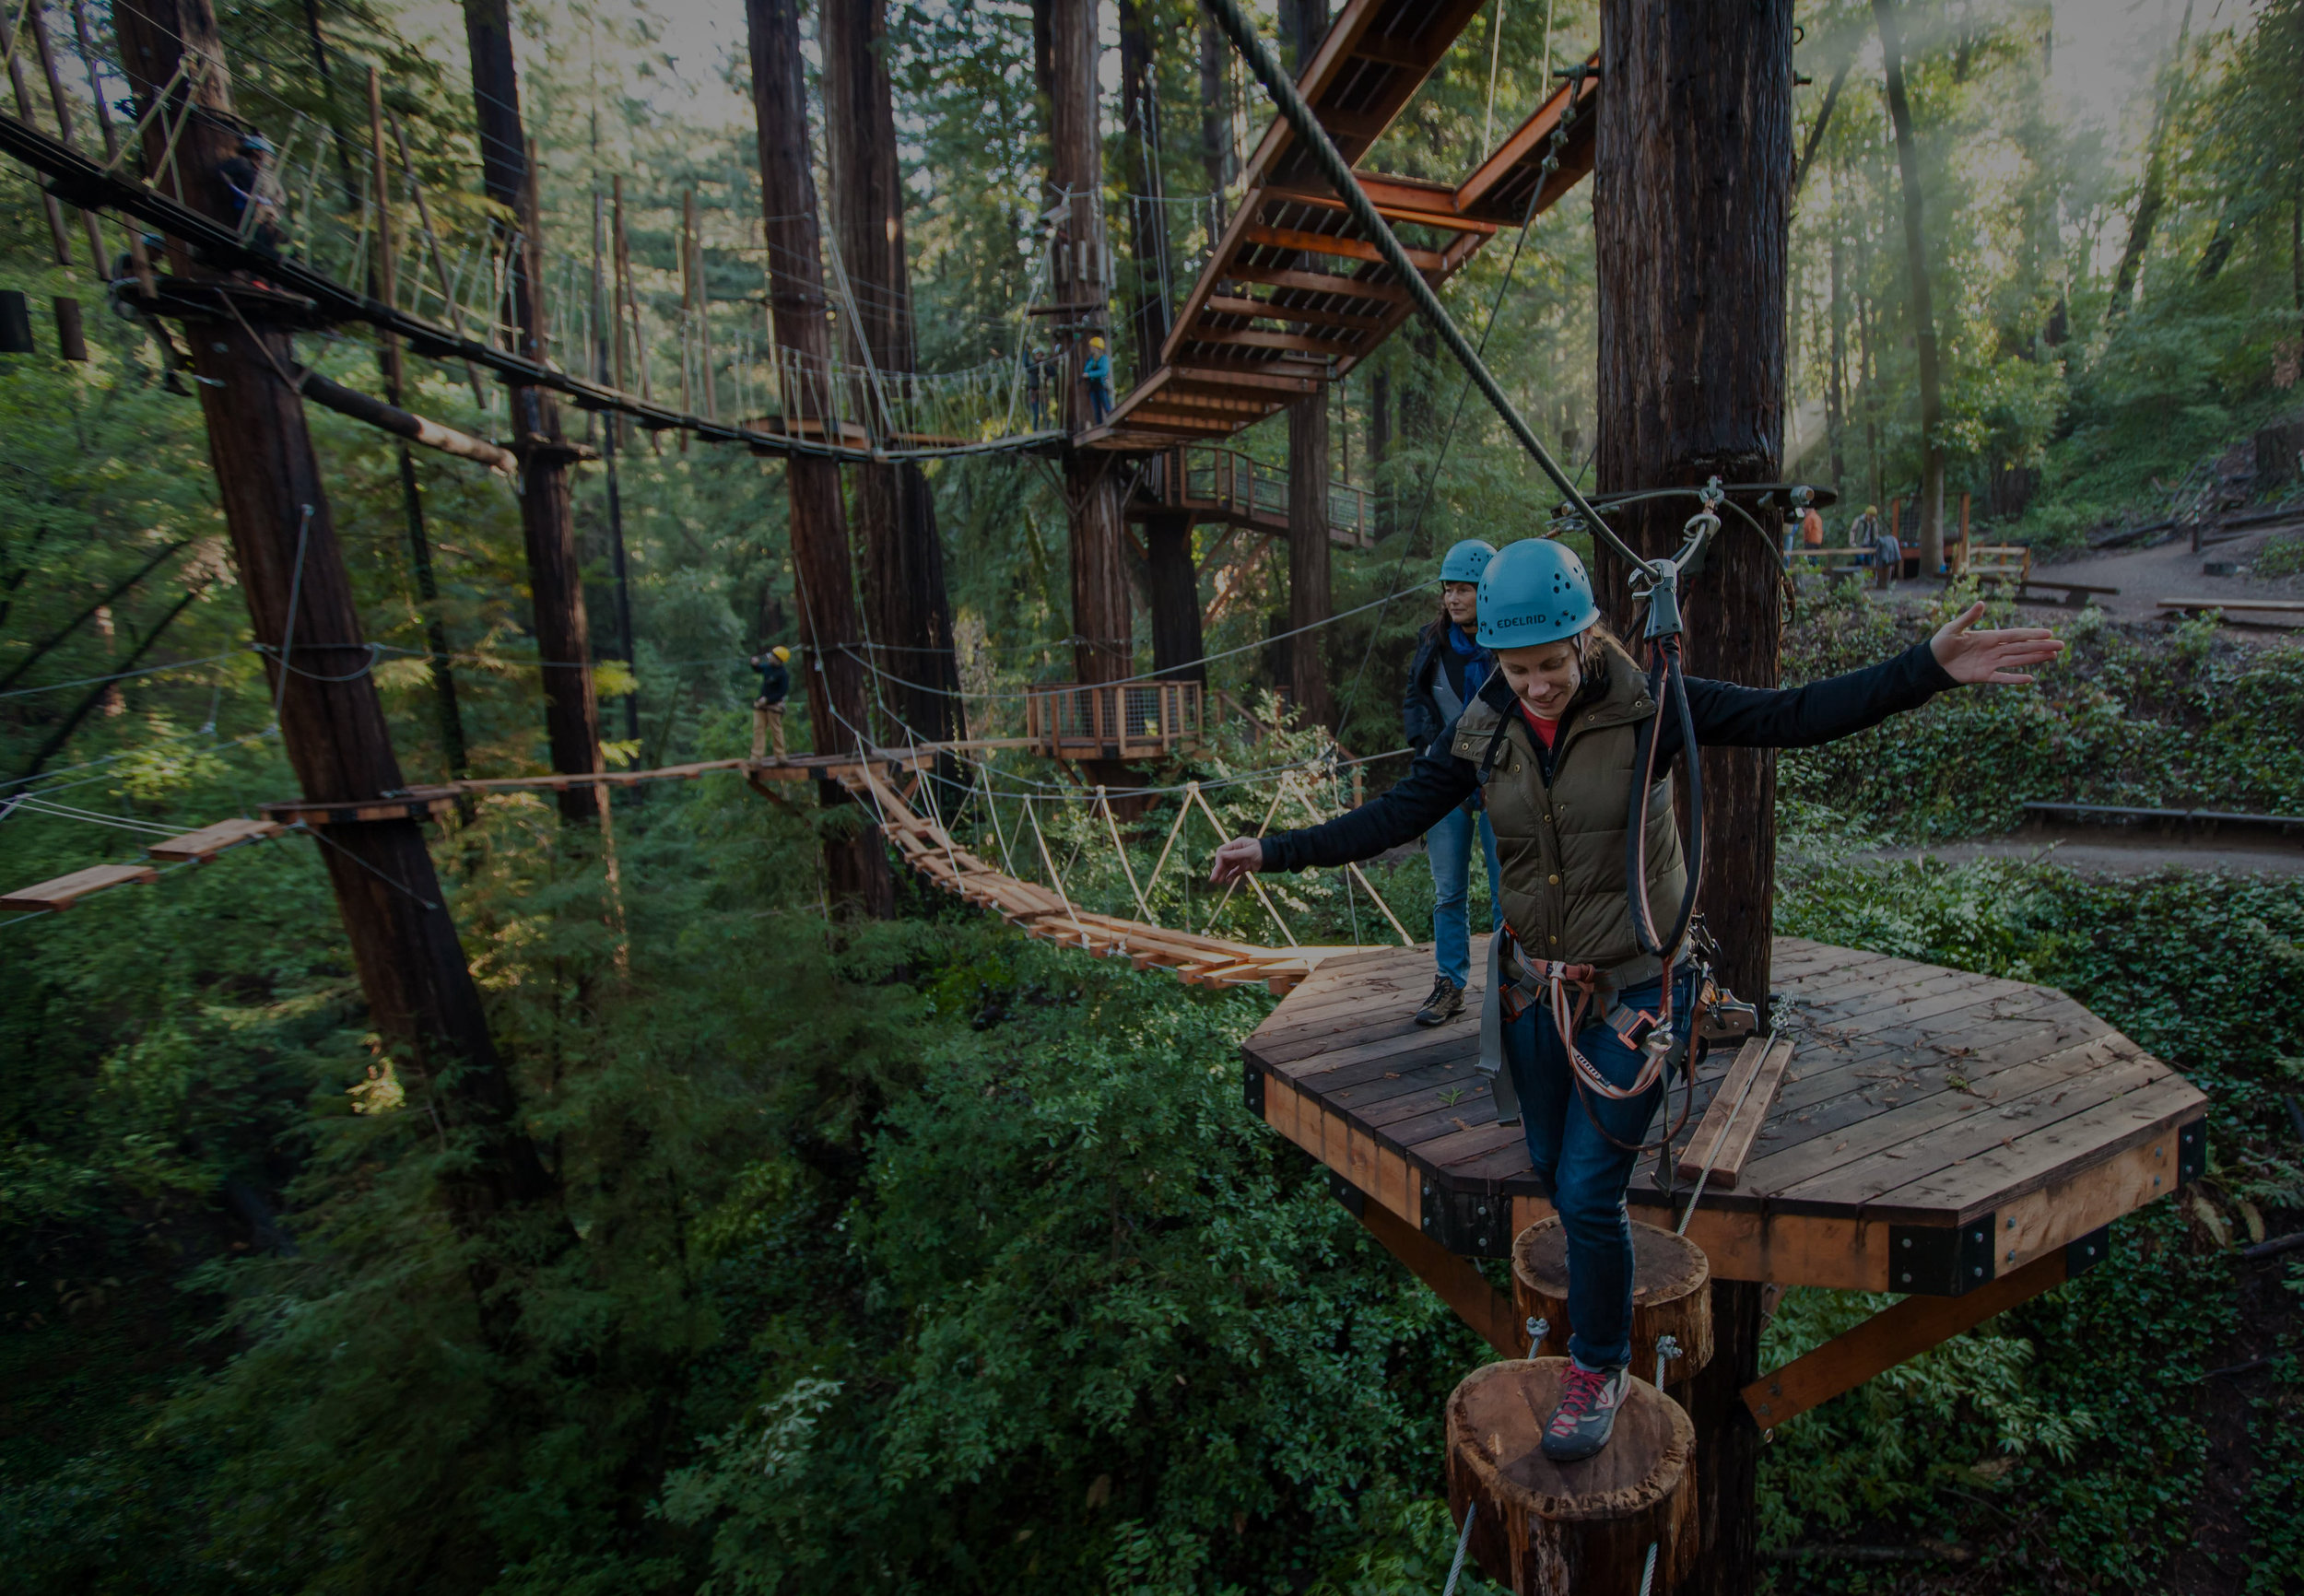 """<font size=""""4"""">ADVENTURE PARKS</font><strong>Composed of high elements, obstacles, high vistas, bridges and zip lines.</strong><a>LEARN MORE →</a>"""